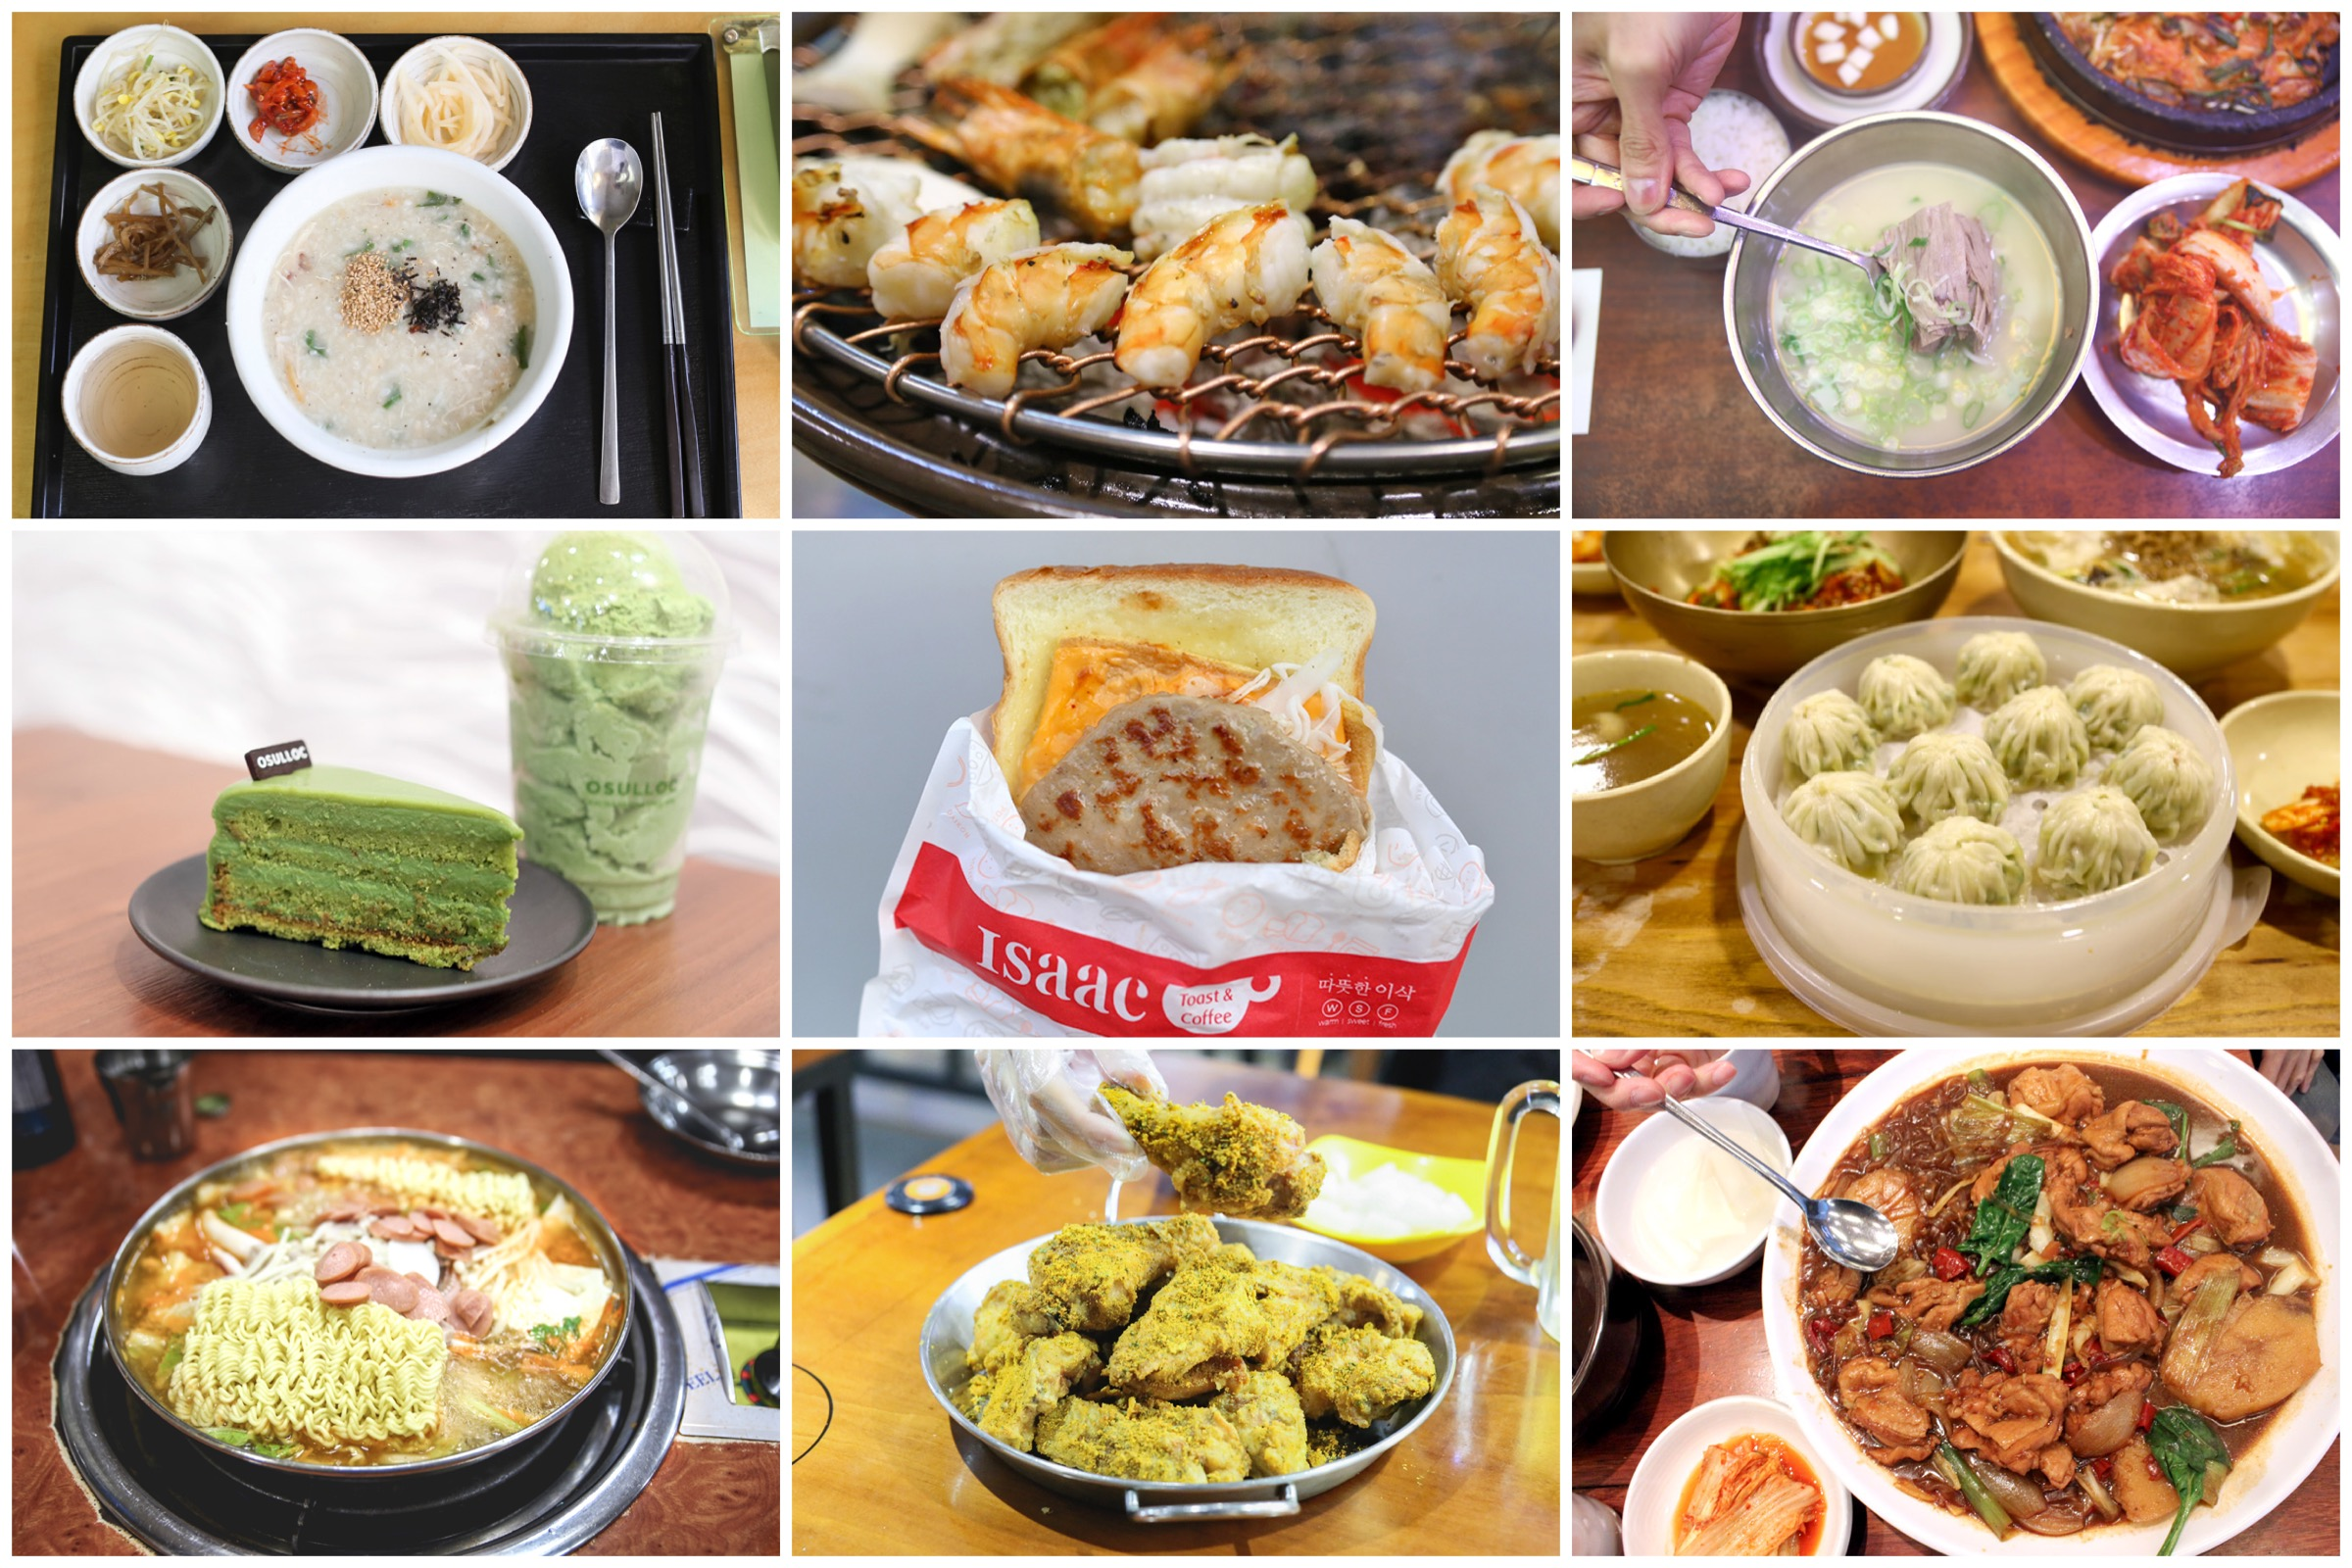 10 Myeongdong Restaurants Cafes From O Sulloc Kyoja To Sinseon Seolleongtang